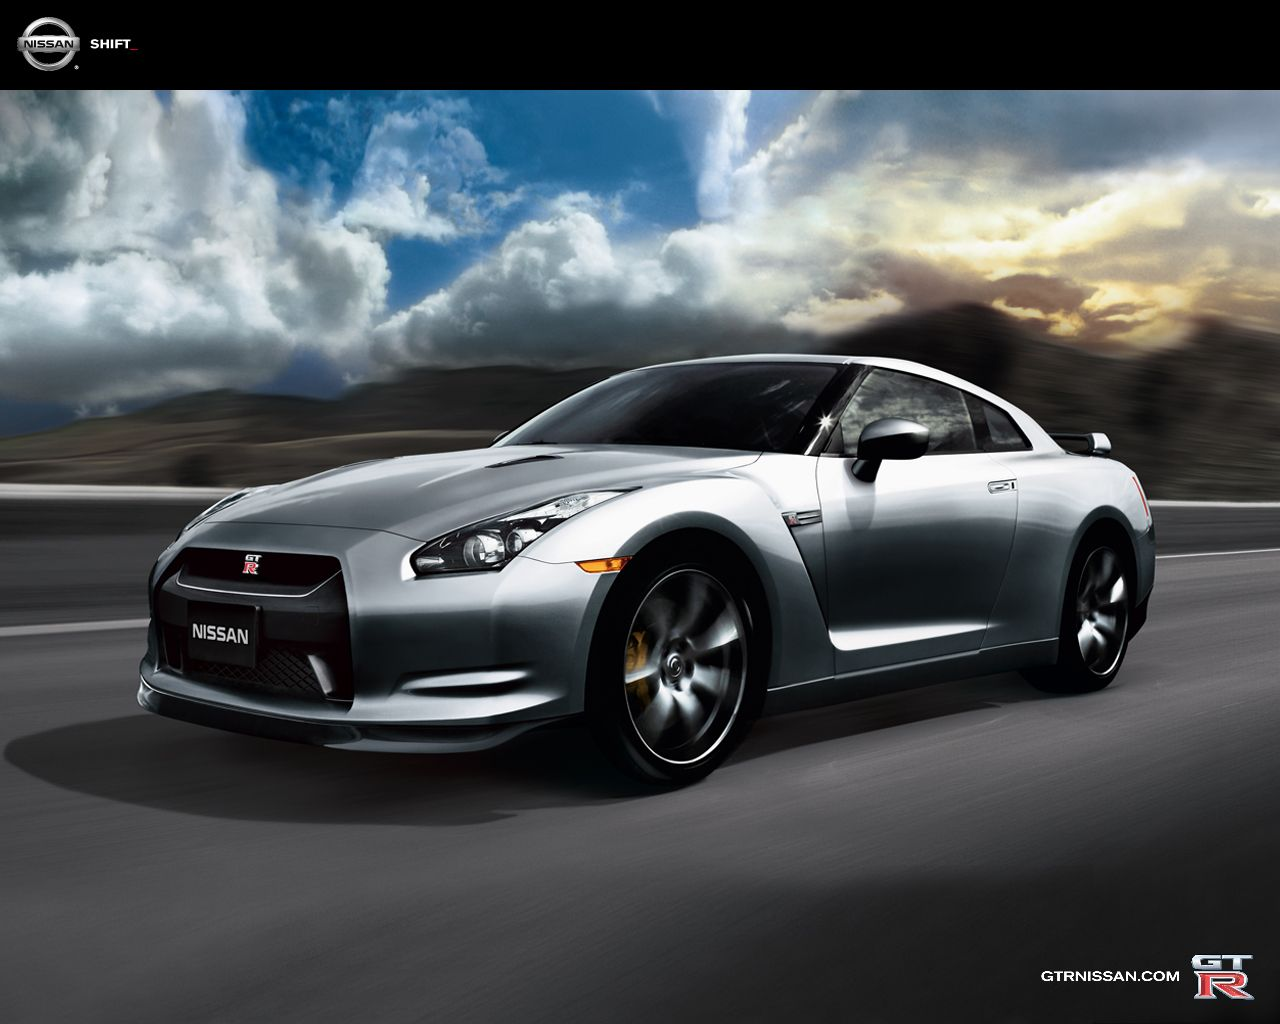 Photos Of Nissan Gtr Google Search GTRSkylines Pinterest - Sports cars 5 letters